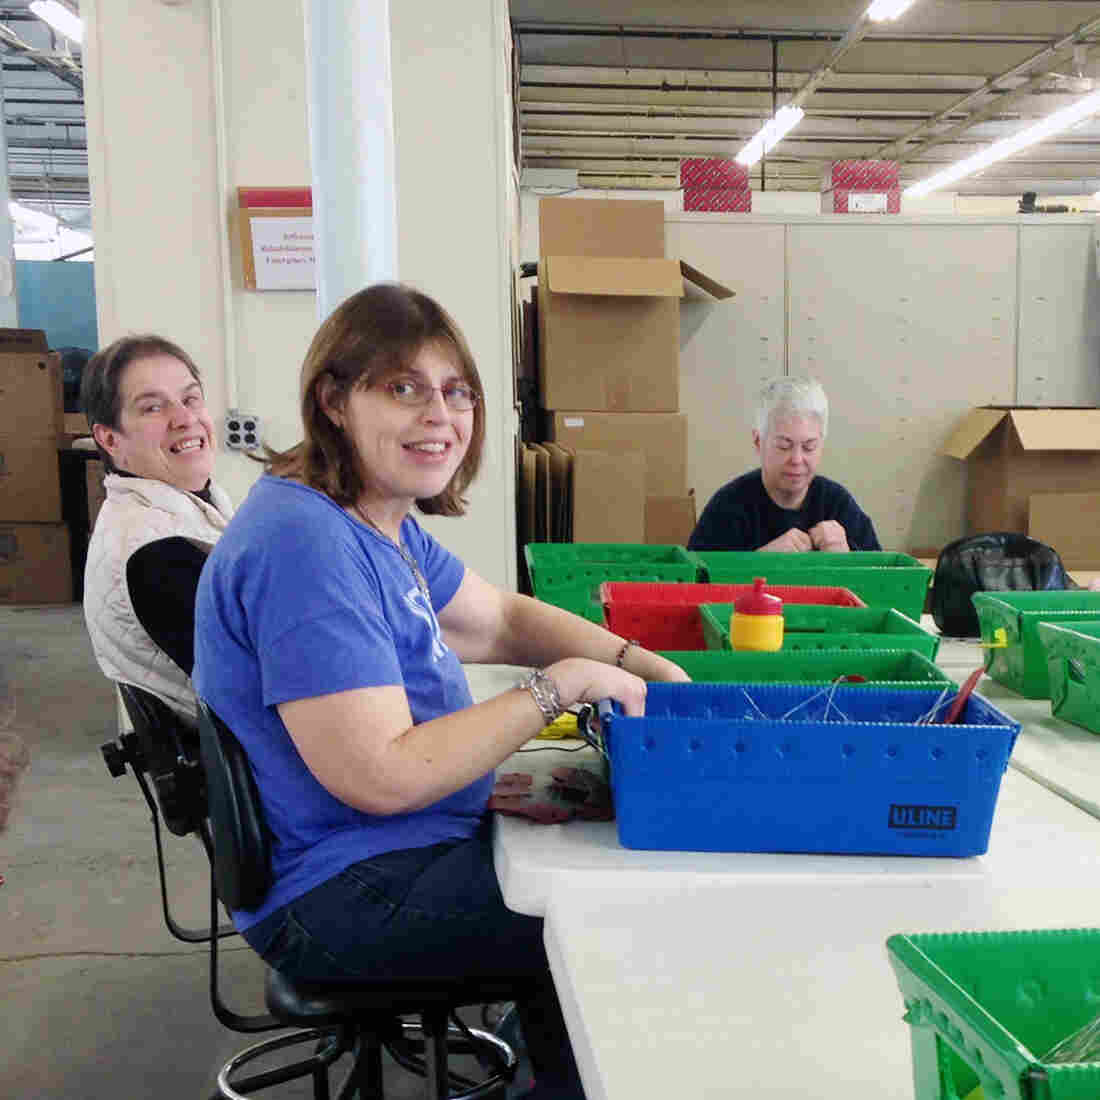 Advocates Fight To Keep Sheltered Workshops For Workers With Disabilities